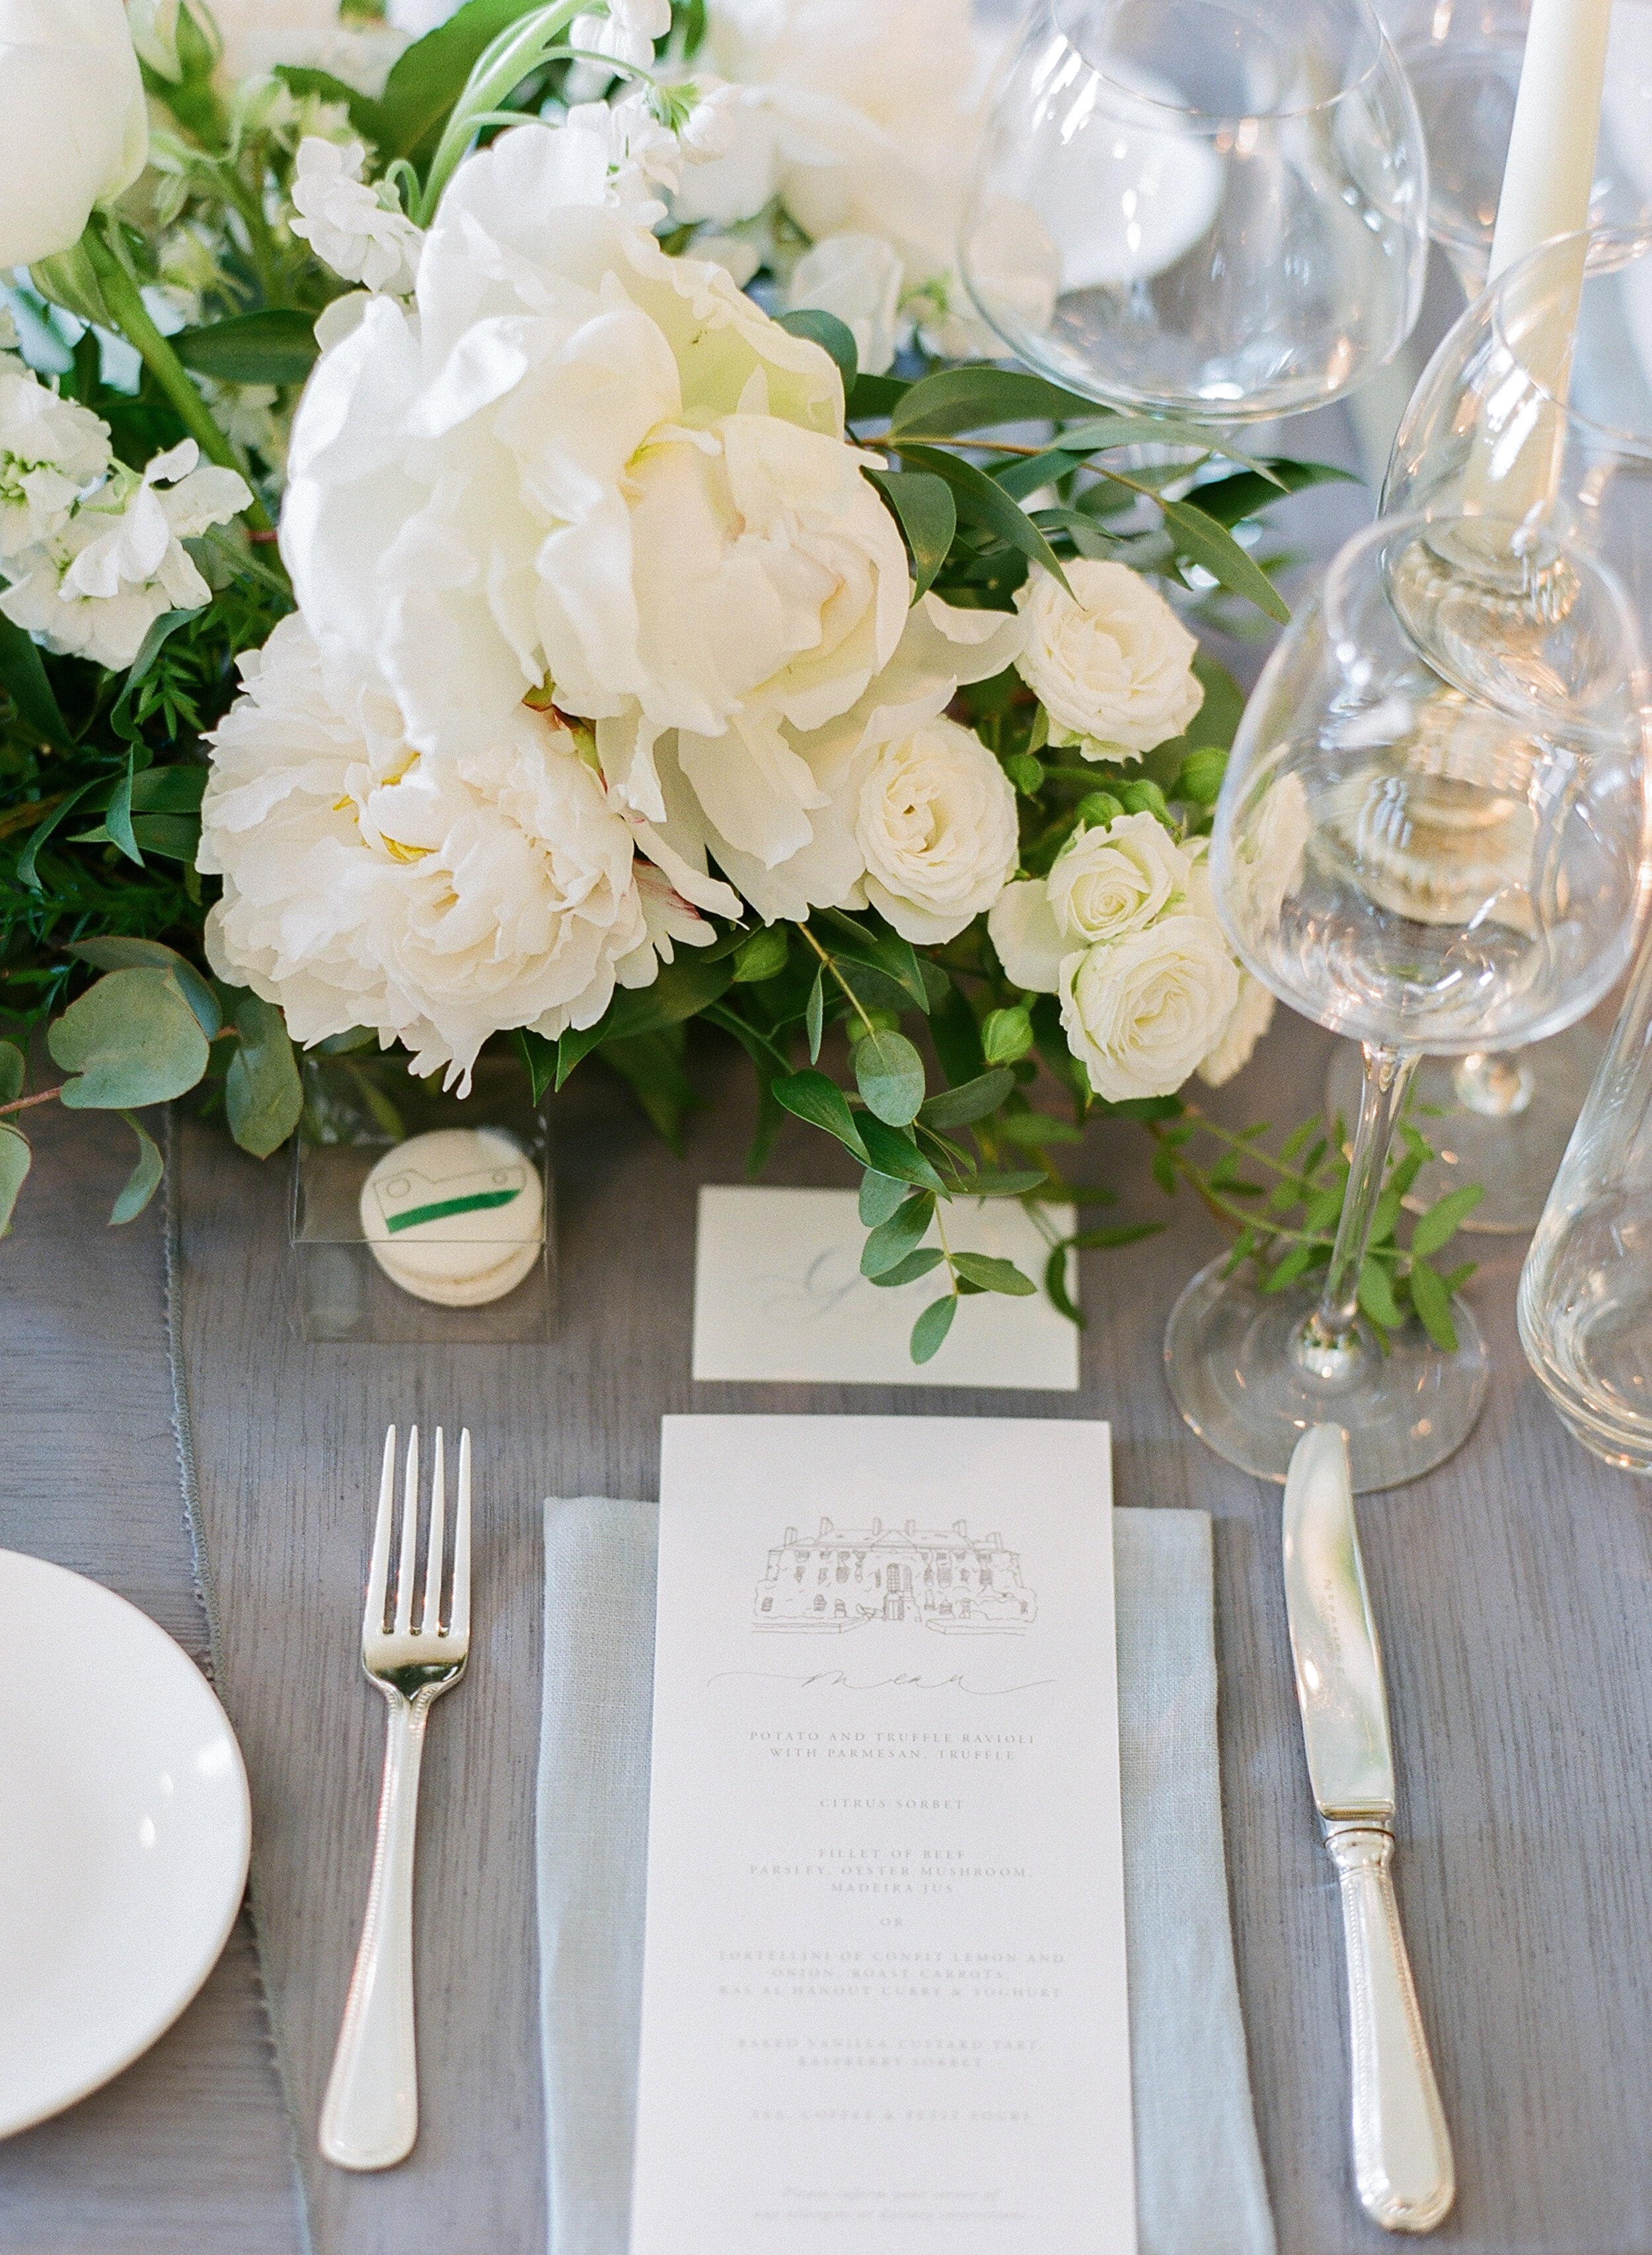 Bella-Botanica-Flowers-Molly-Carr-Photography-Reception-Place-Setting-Florals176.JPG